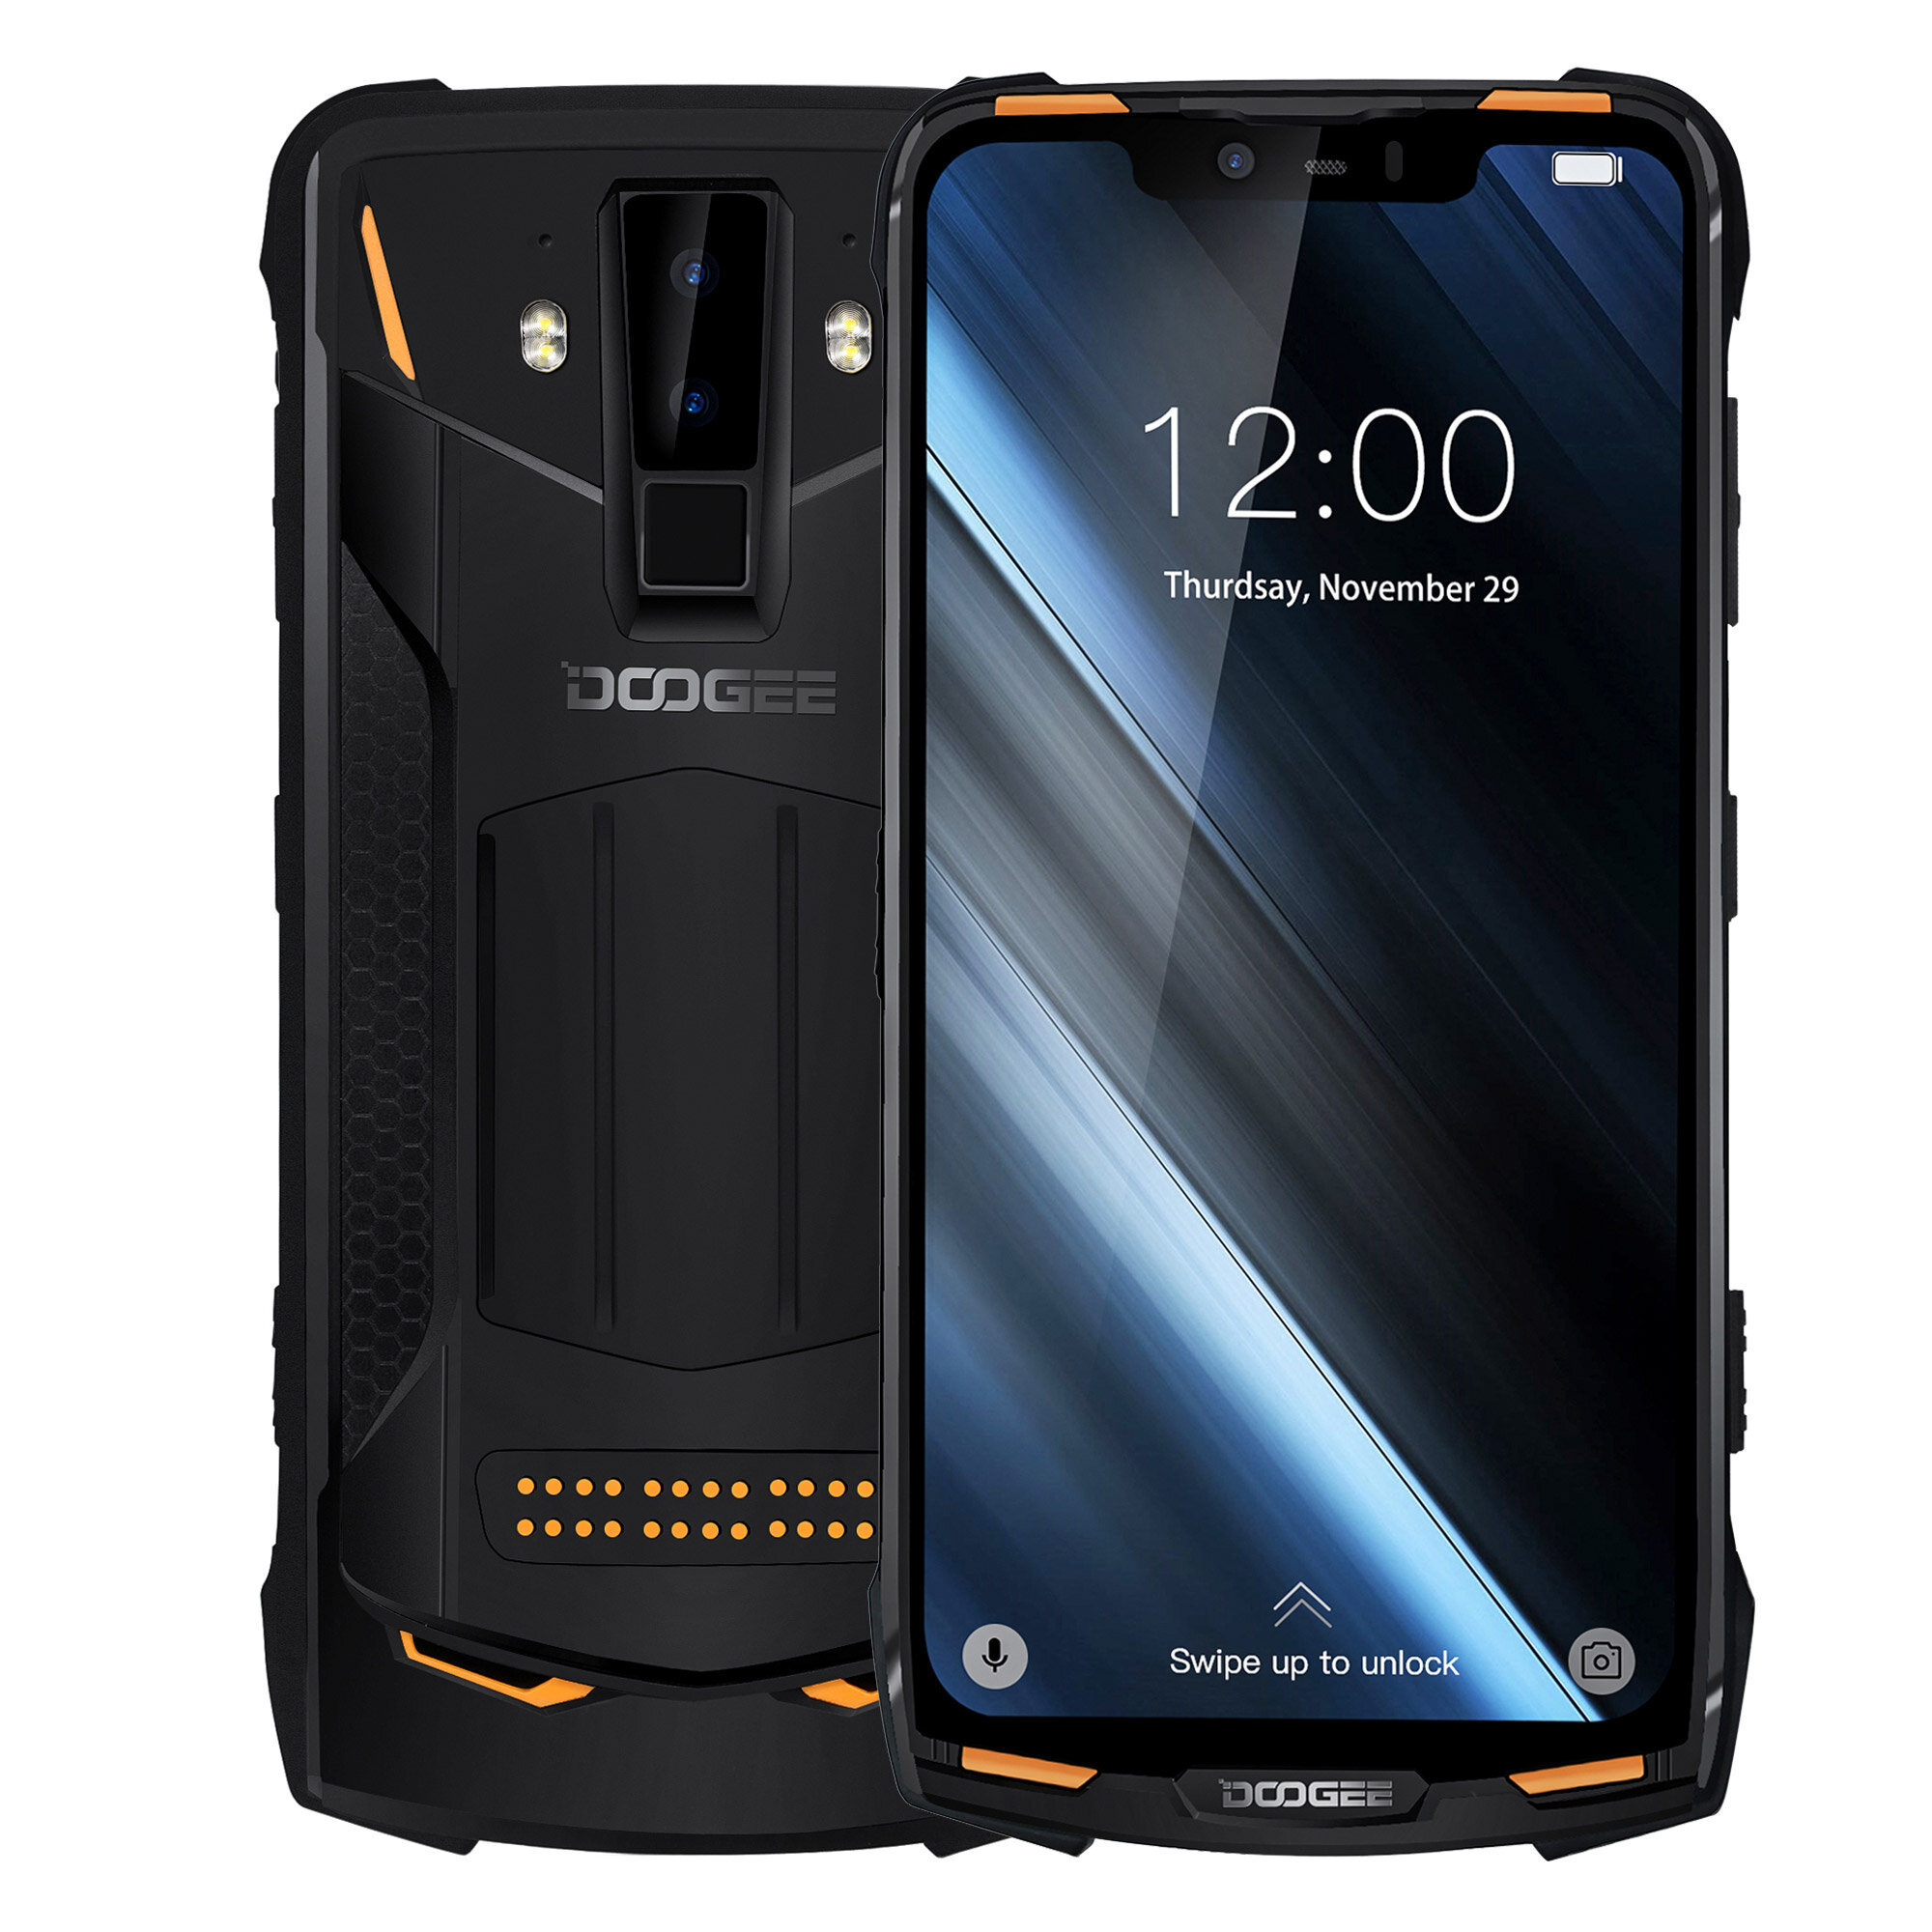 DOOGEE S90C Global Bands IP68 Waterproof 6.18 inch FHD+ NFC 5050mAh 16MP+8MP AI Dual Rear Cameras 4GB 64GB Helio P70 4G Smartphone - Orange